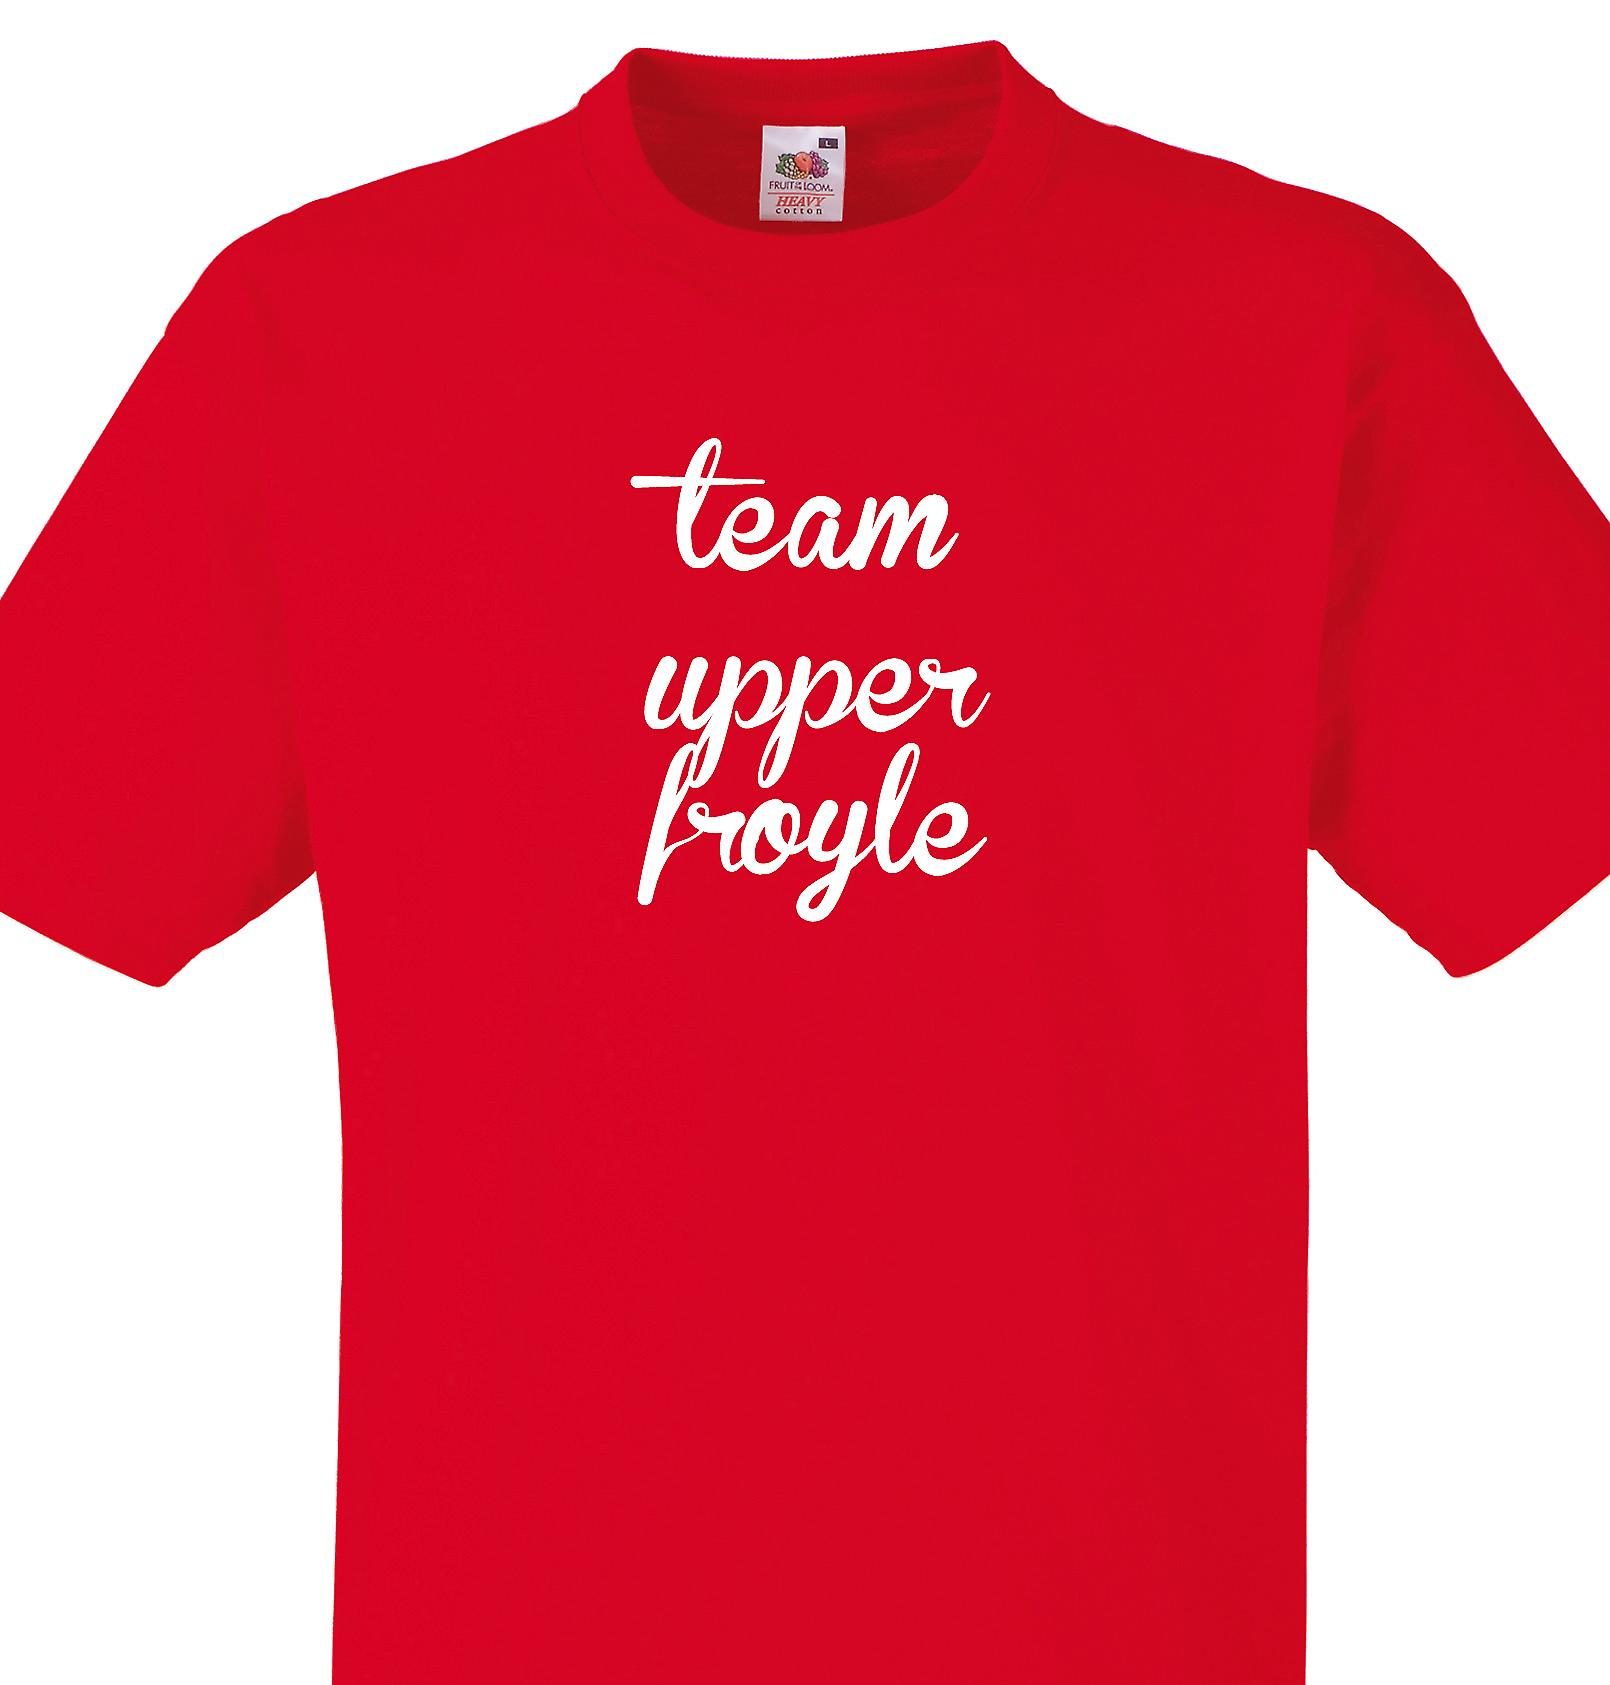 Team Upper froyle Red T shirt